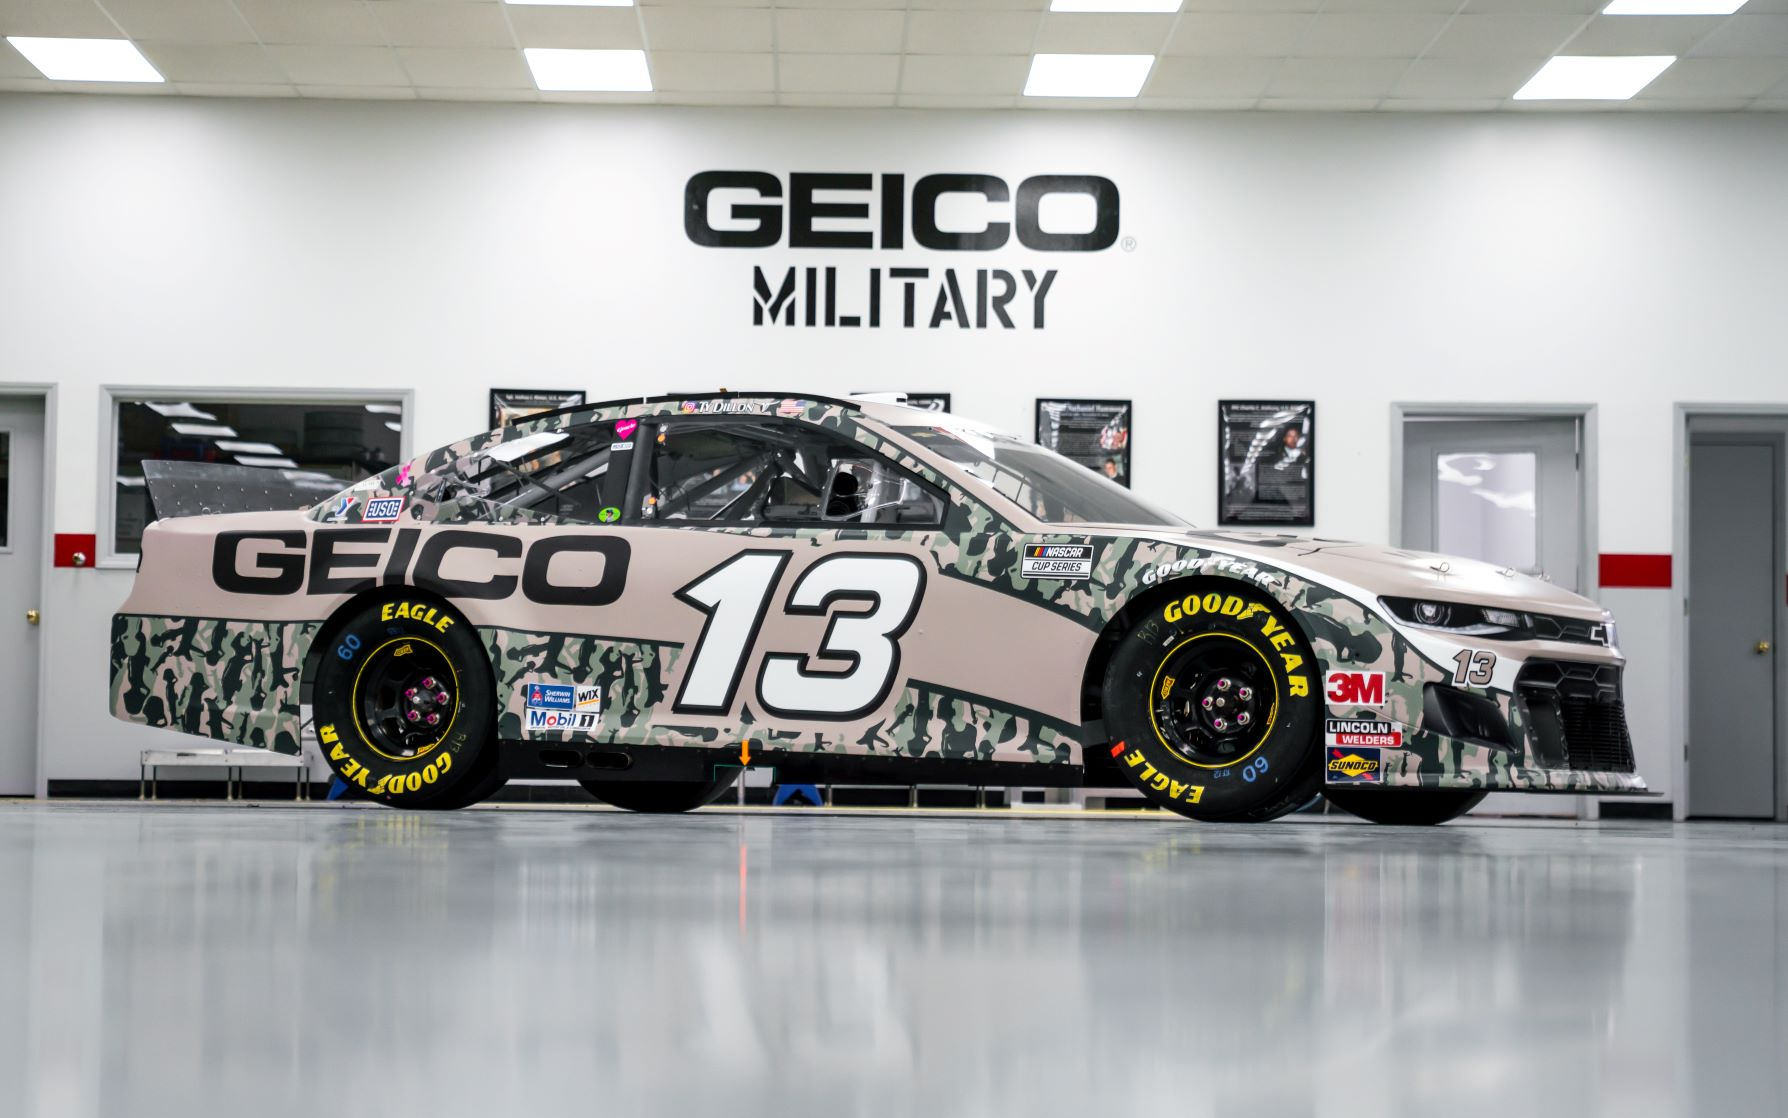 The New RCR NASCAR Geico Military Wrap